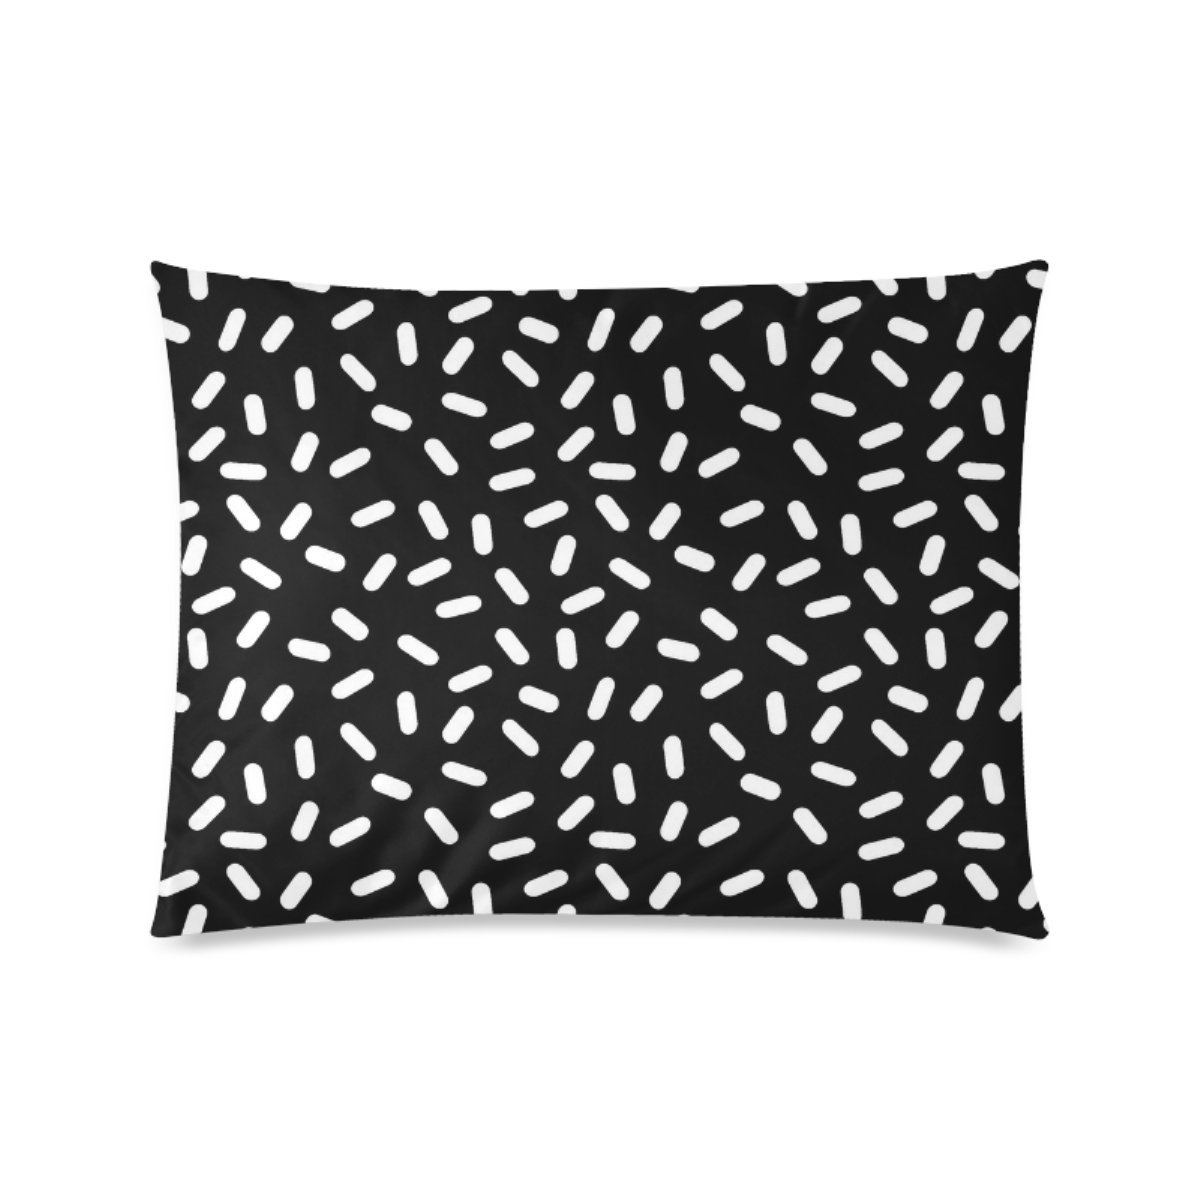 Custom Bingo Black And White Personalized Pillowcases Zippered Pillow Covers 20 by 26 Inches Two Sides by BEACASES